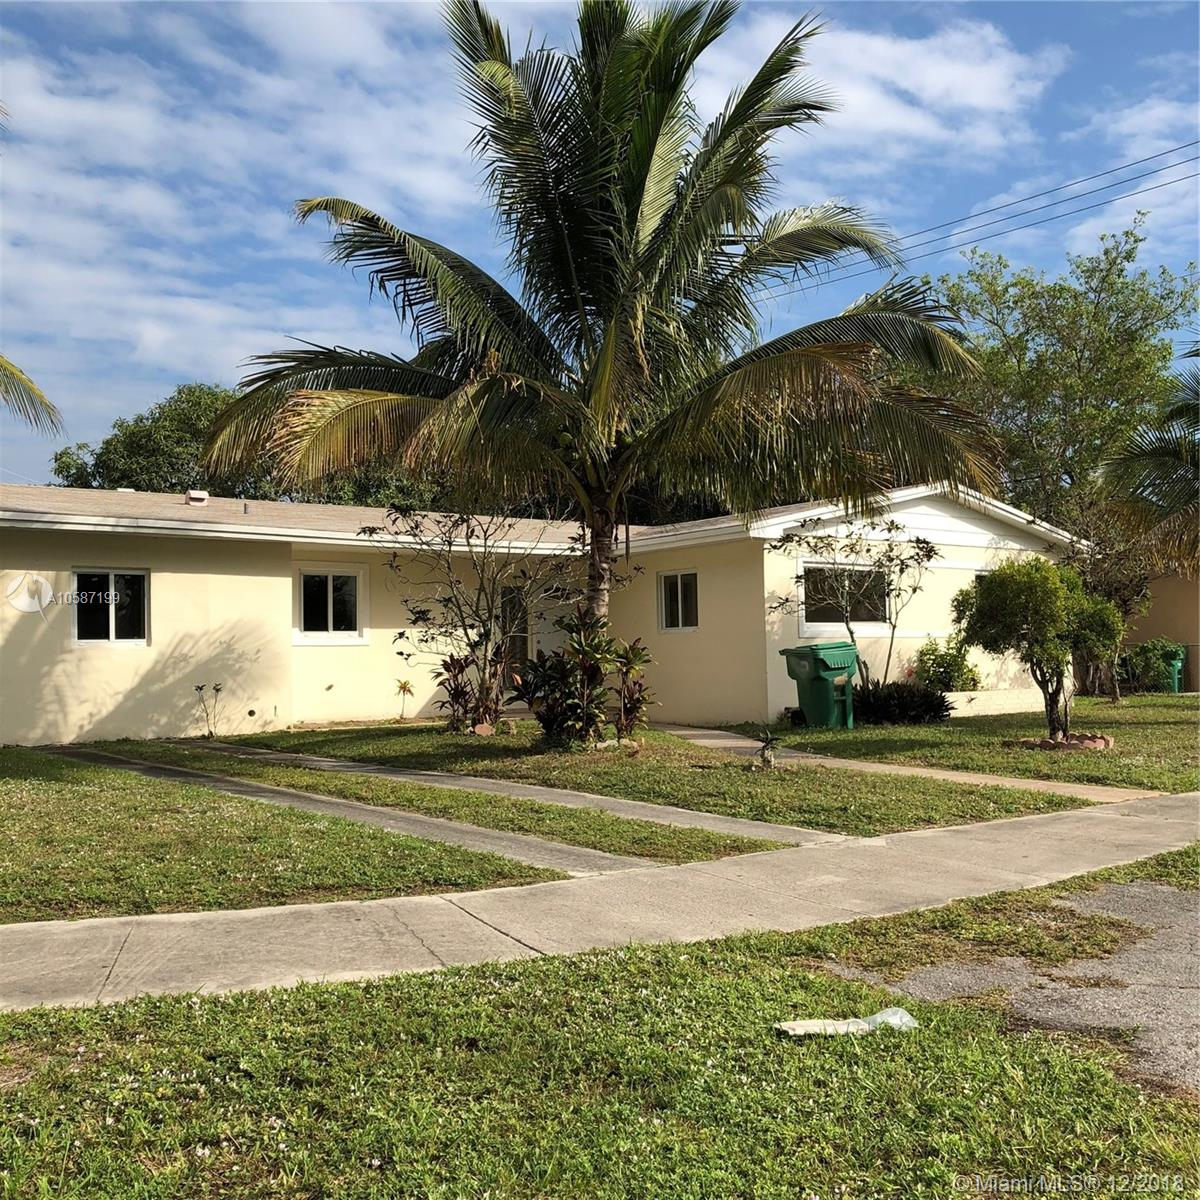 1375 NW 172nd Ter, Miami Gardens, FL 33169